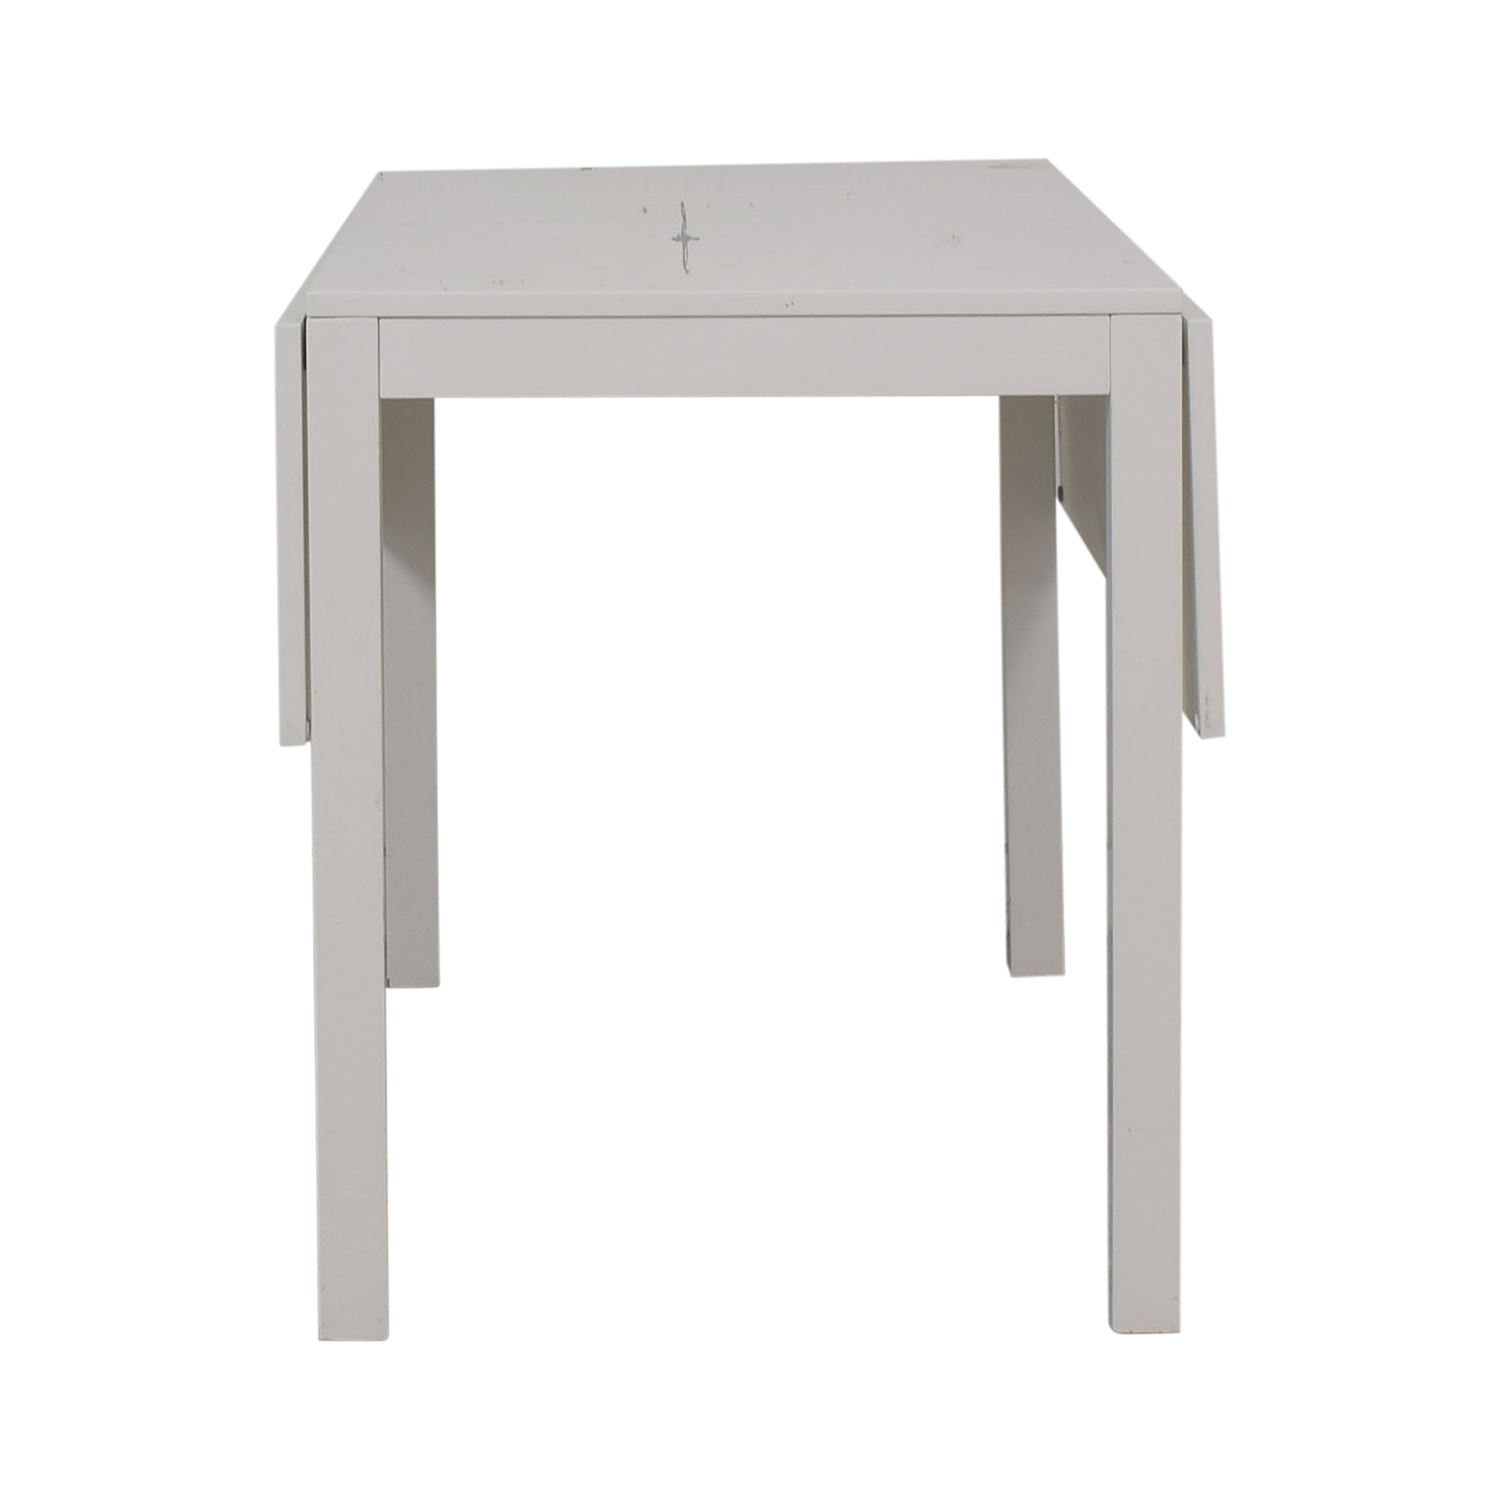 CB2 Drop Leaf Table CB2